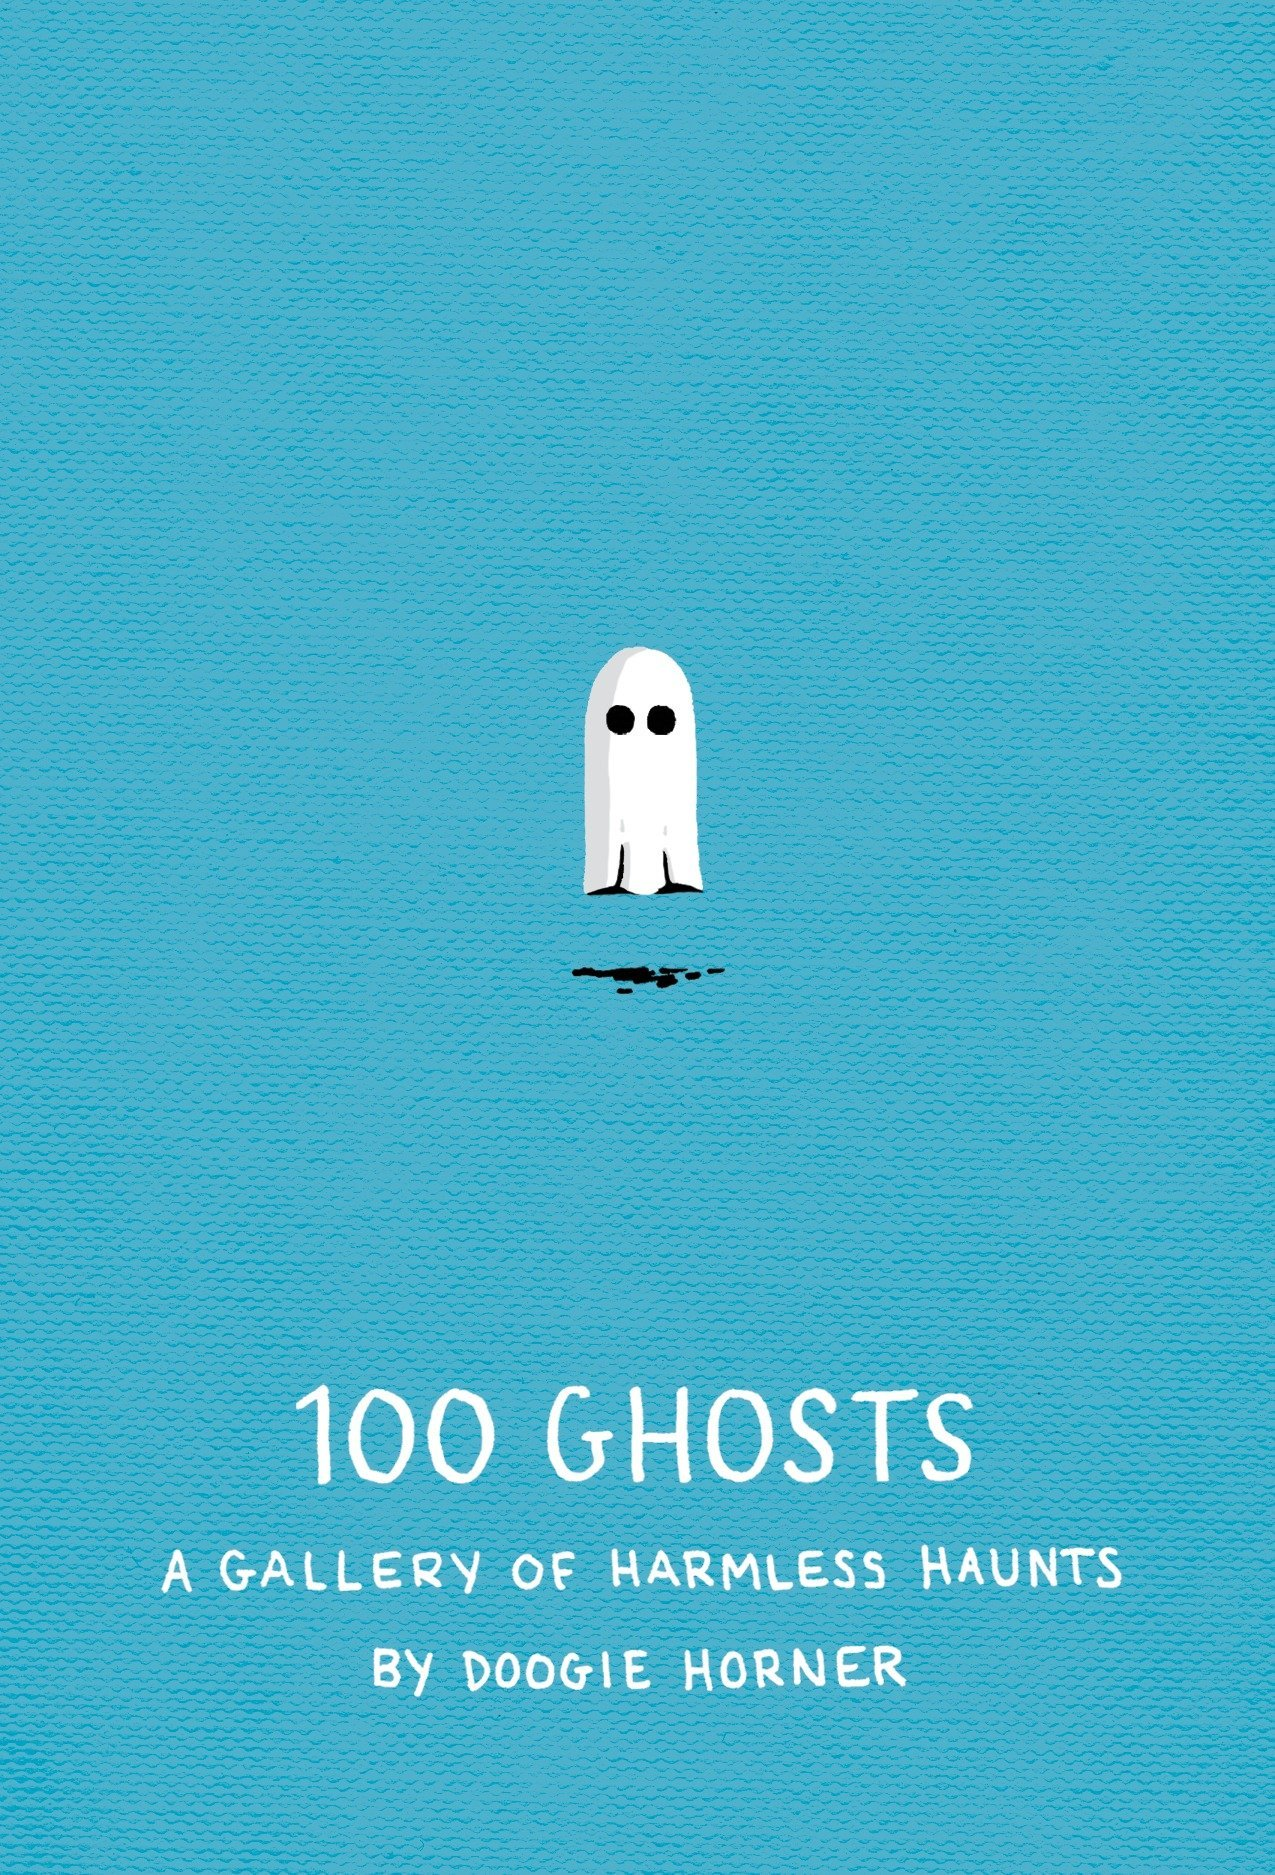 100 Ghosts: A Gallery of Harmless Haunts pdf